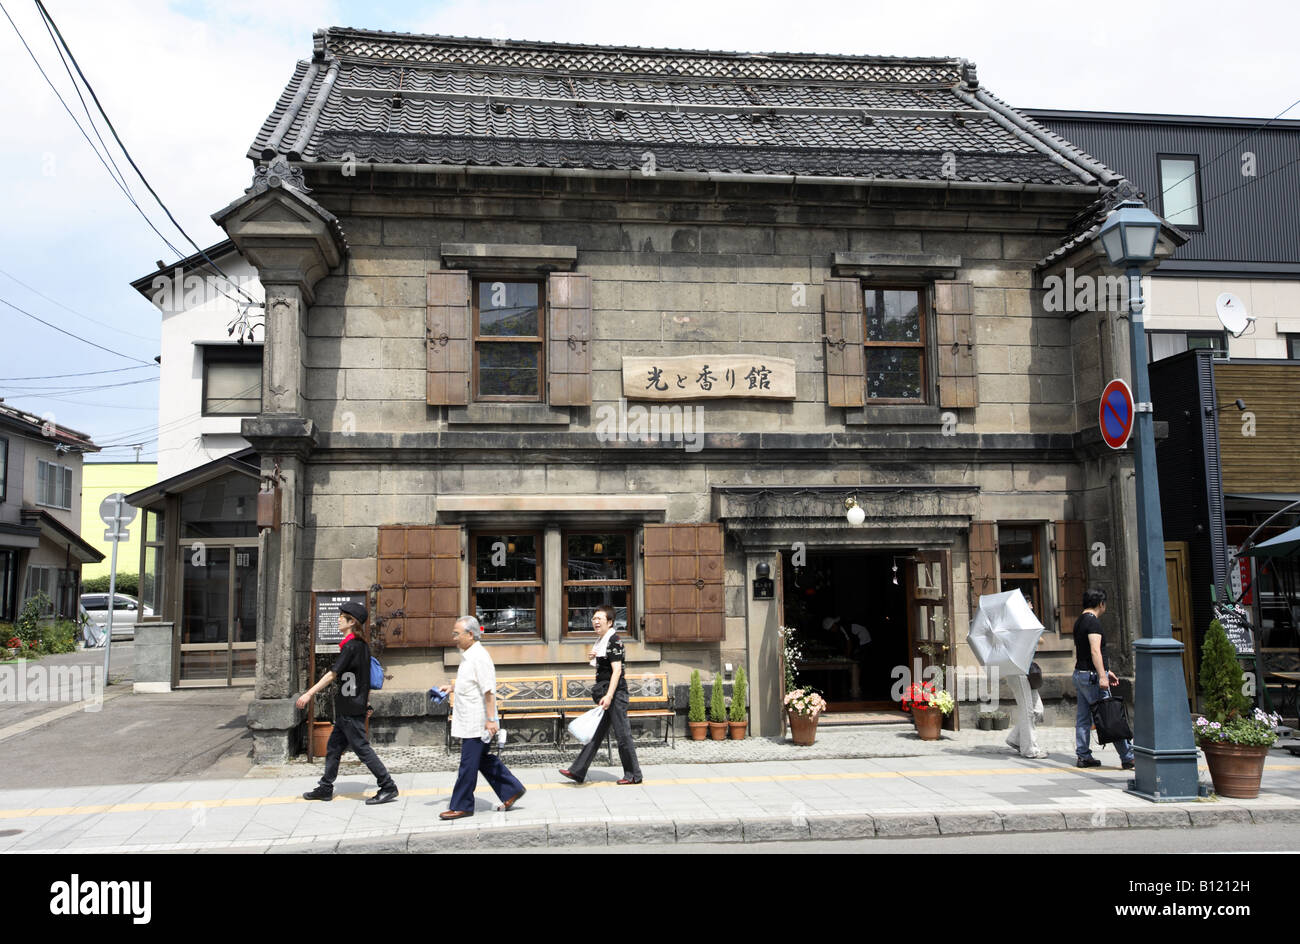 Old house in otaru hokkaido japan stock photo royalty for Classic japanese house